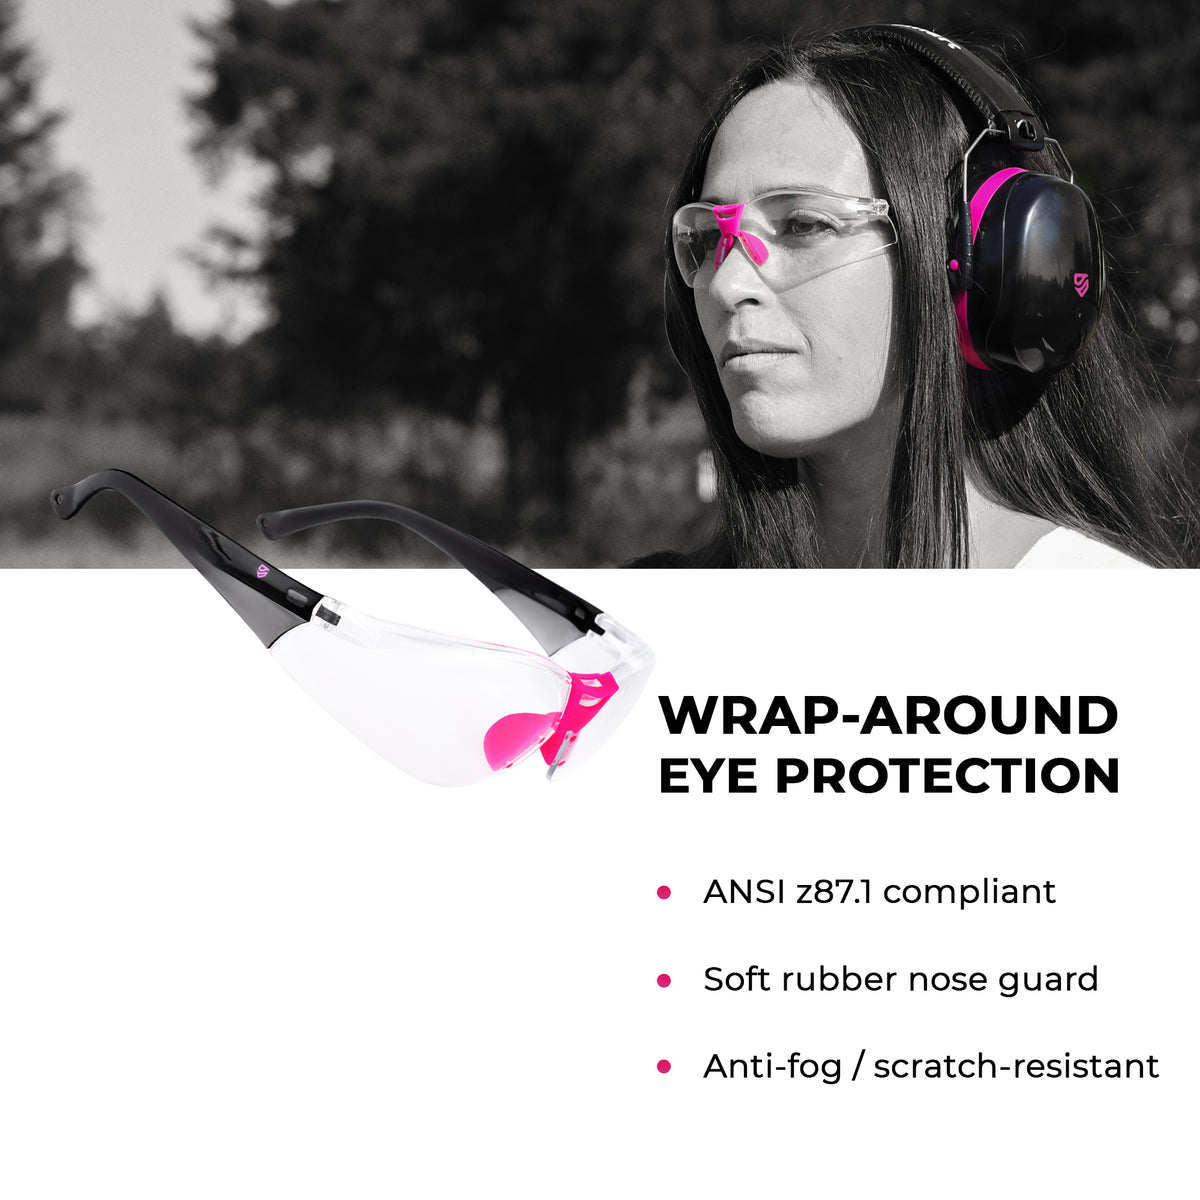 ESSENTIALS - Pink Earmuffs & Clear, Indoor Safety Glasses